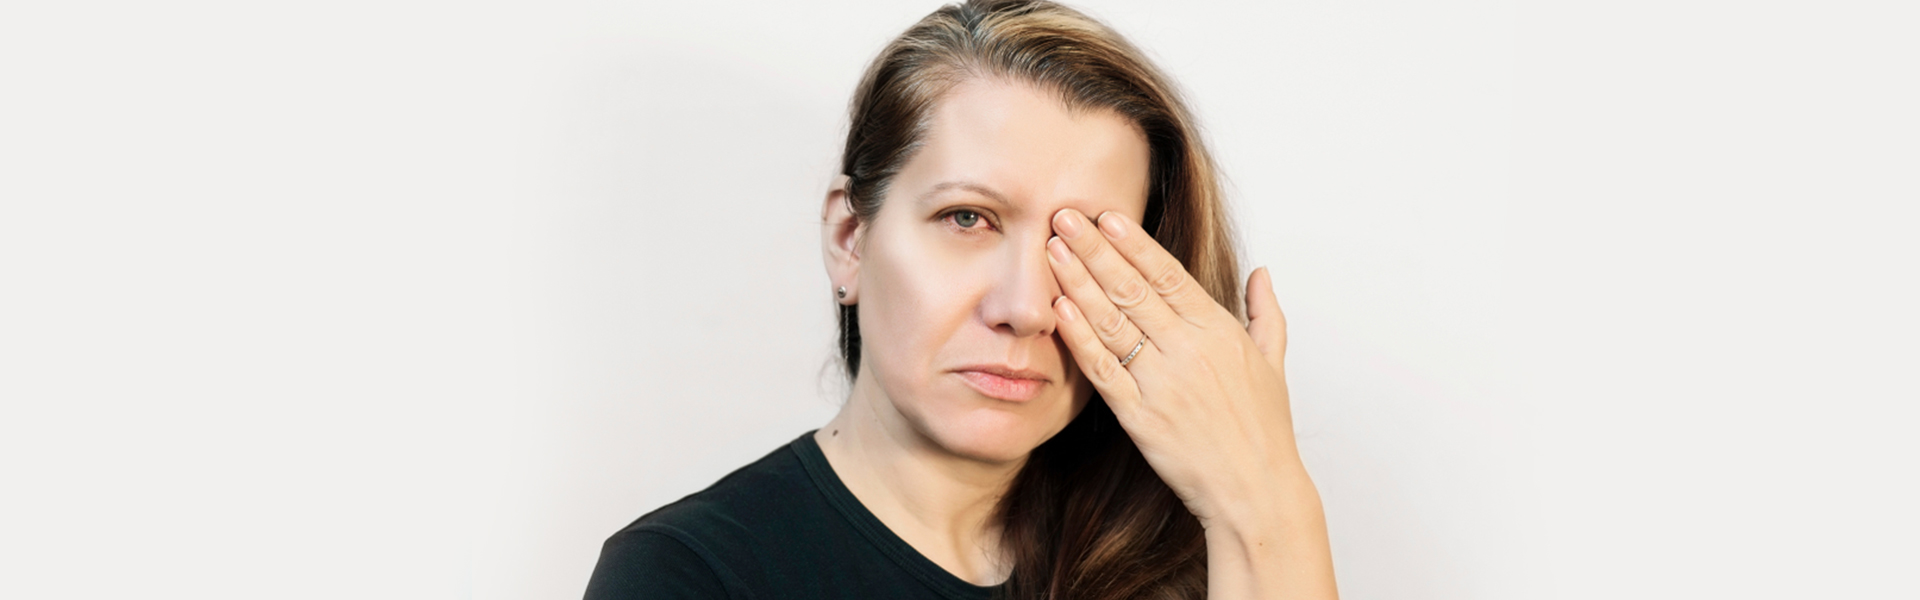 What Evidences Show That You Have Dry Eye Disease?